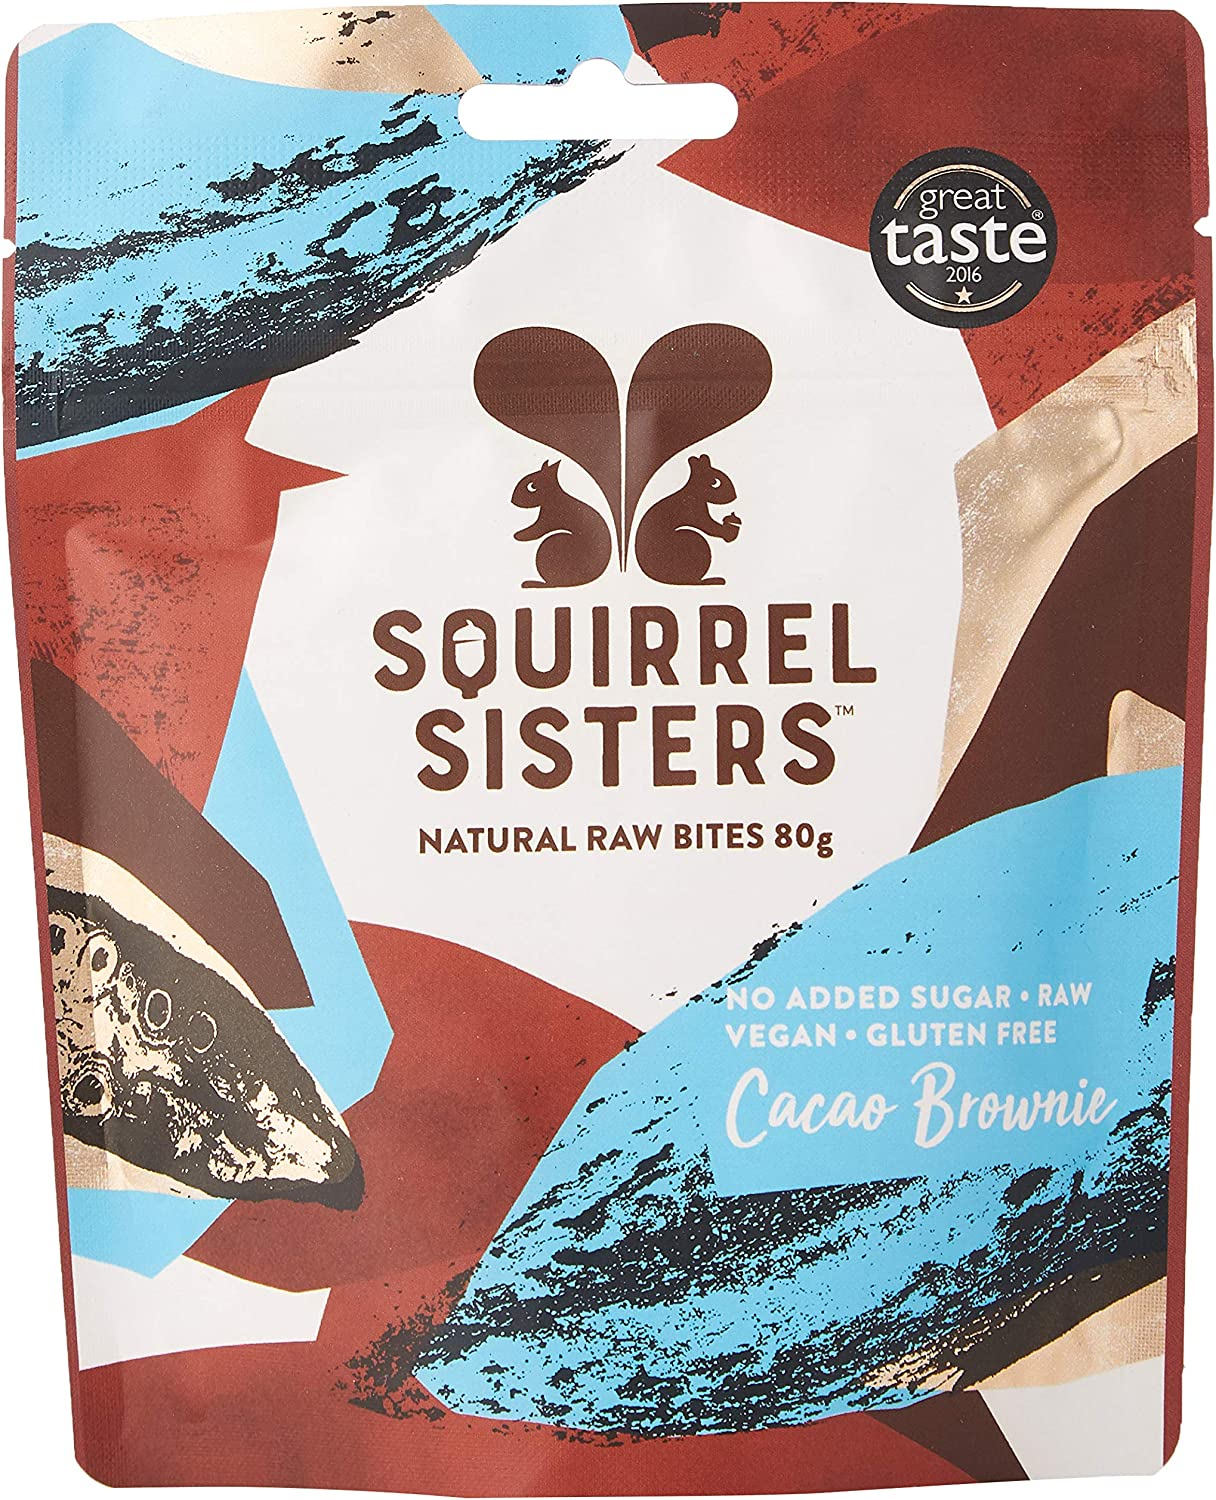 Squirrel Sisters Cacao Brownie Natural Raw Bites Share Bag 80g